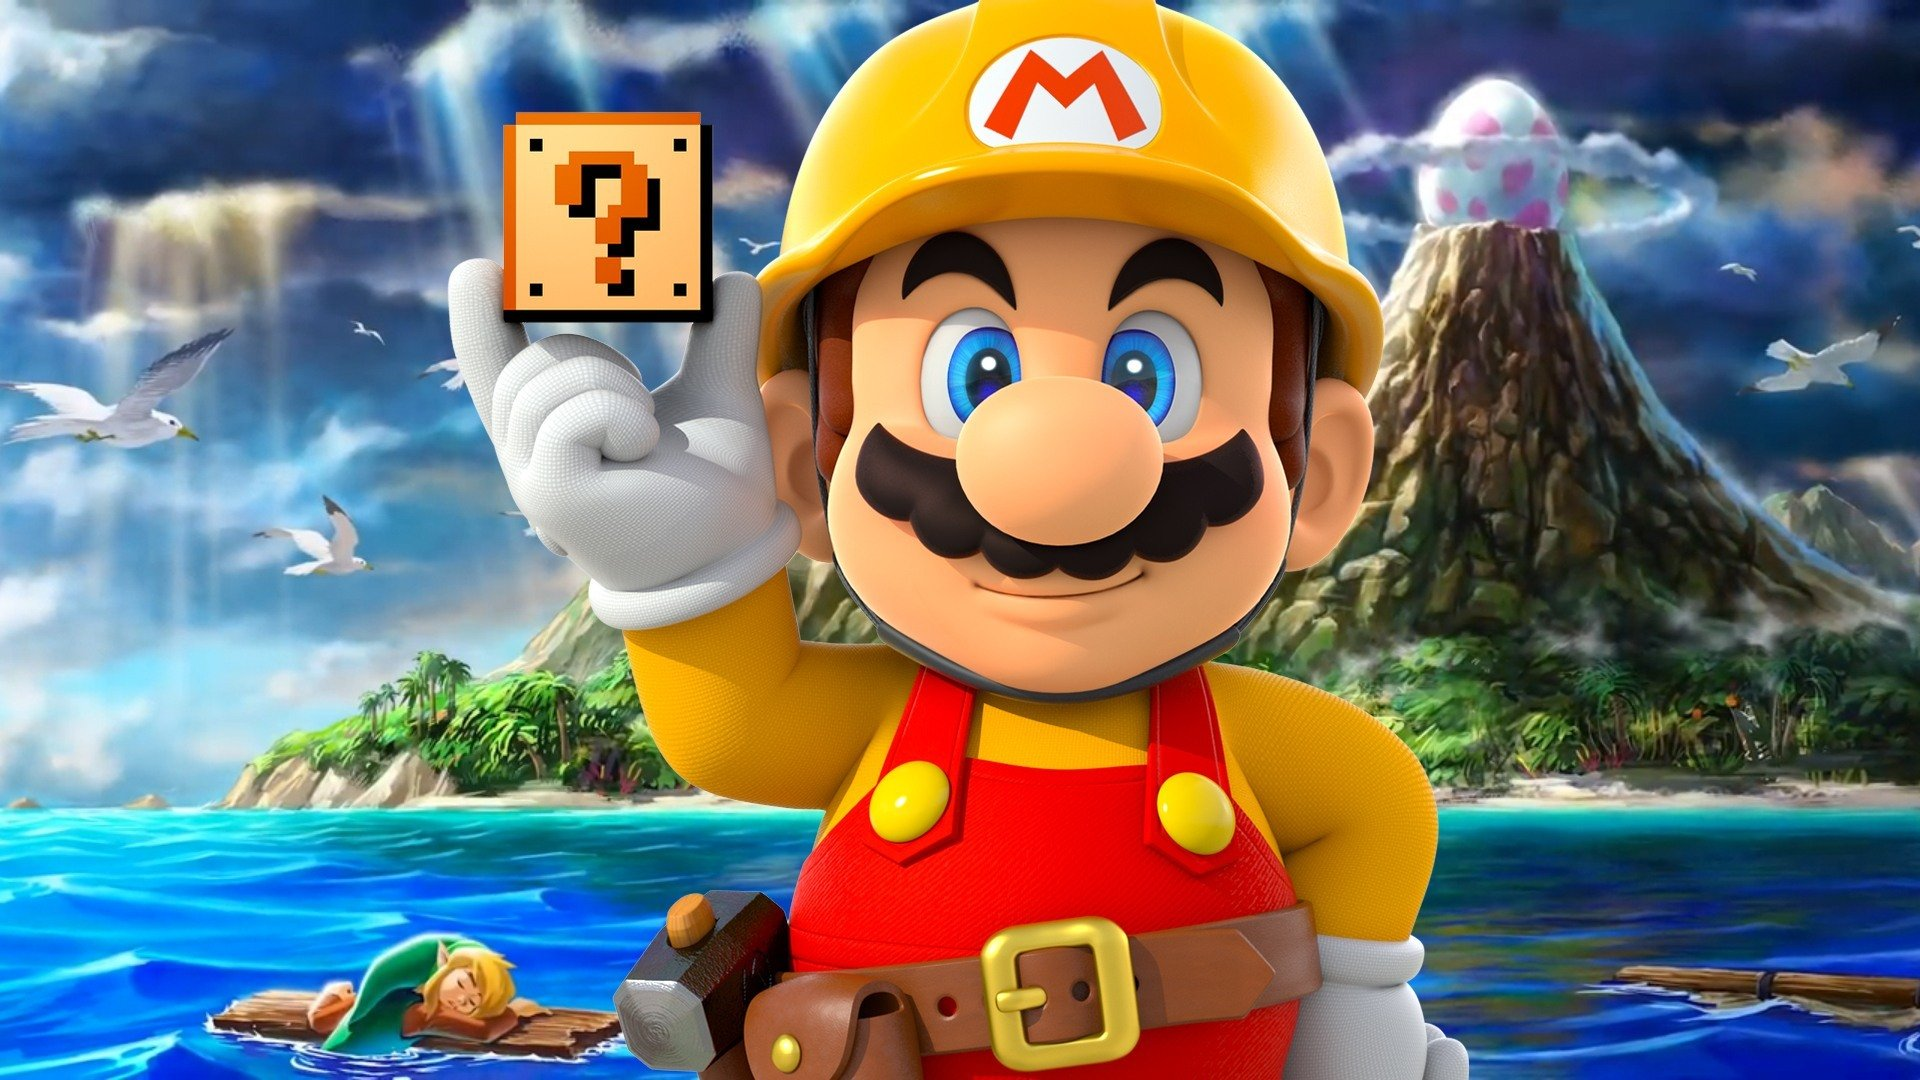 Super Mario Maker 2 Wallpapers And Details For All Fans Mega Themes